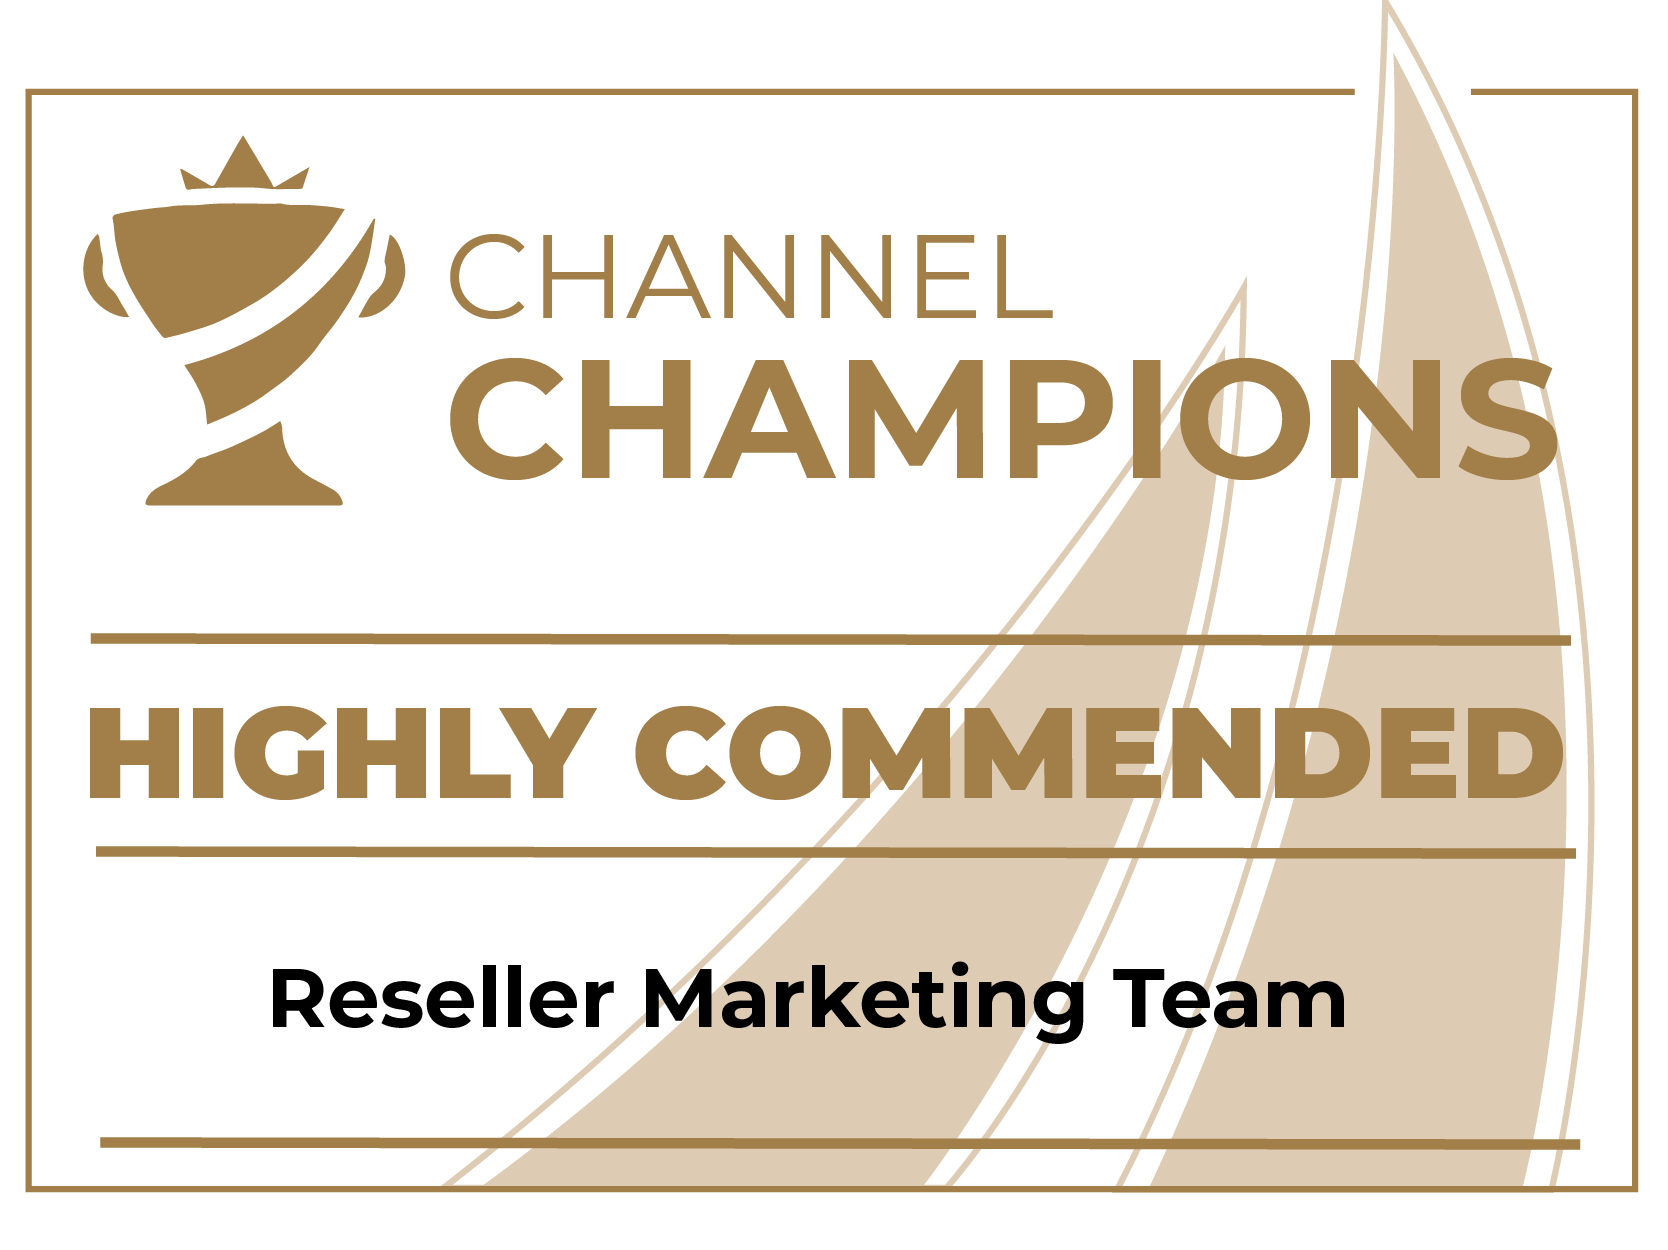 Wavenet Channel Champions 2021 - Reseller Marketing Team - Highly Commended